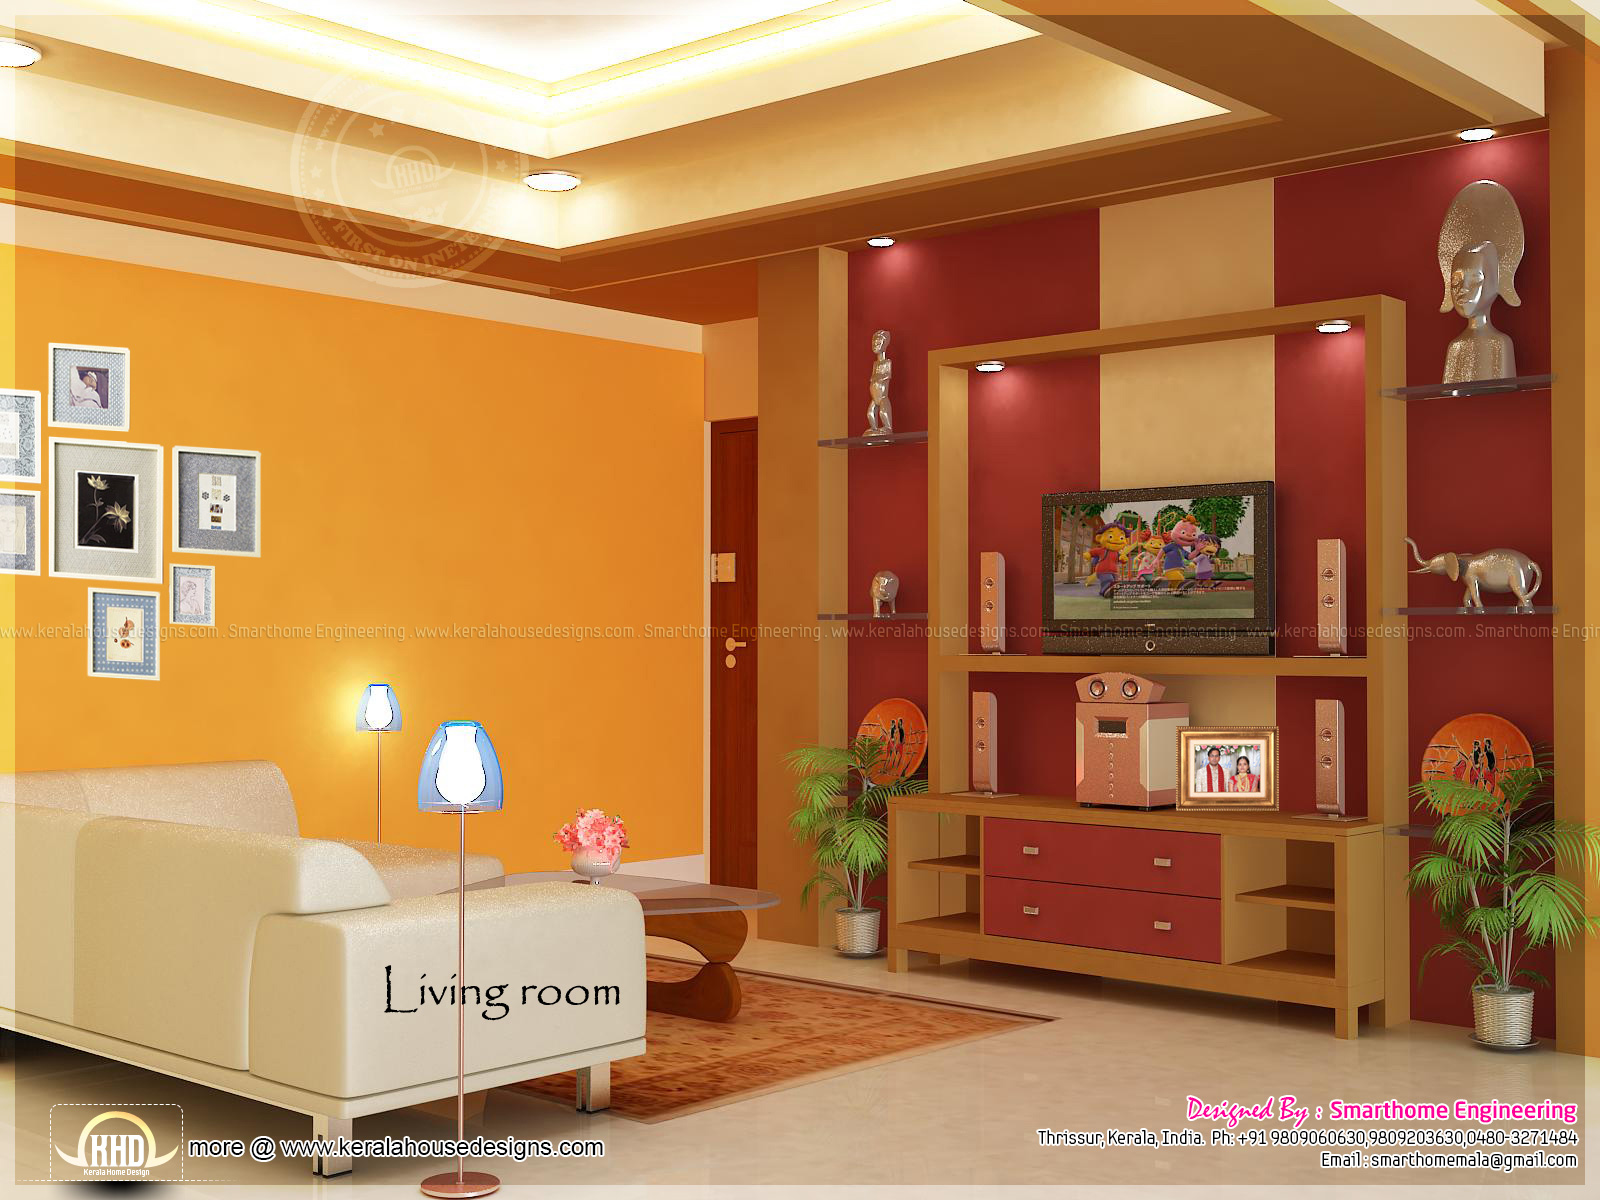 home interior design by smarthome engineering, thrissur kerala home